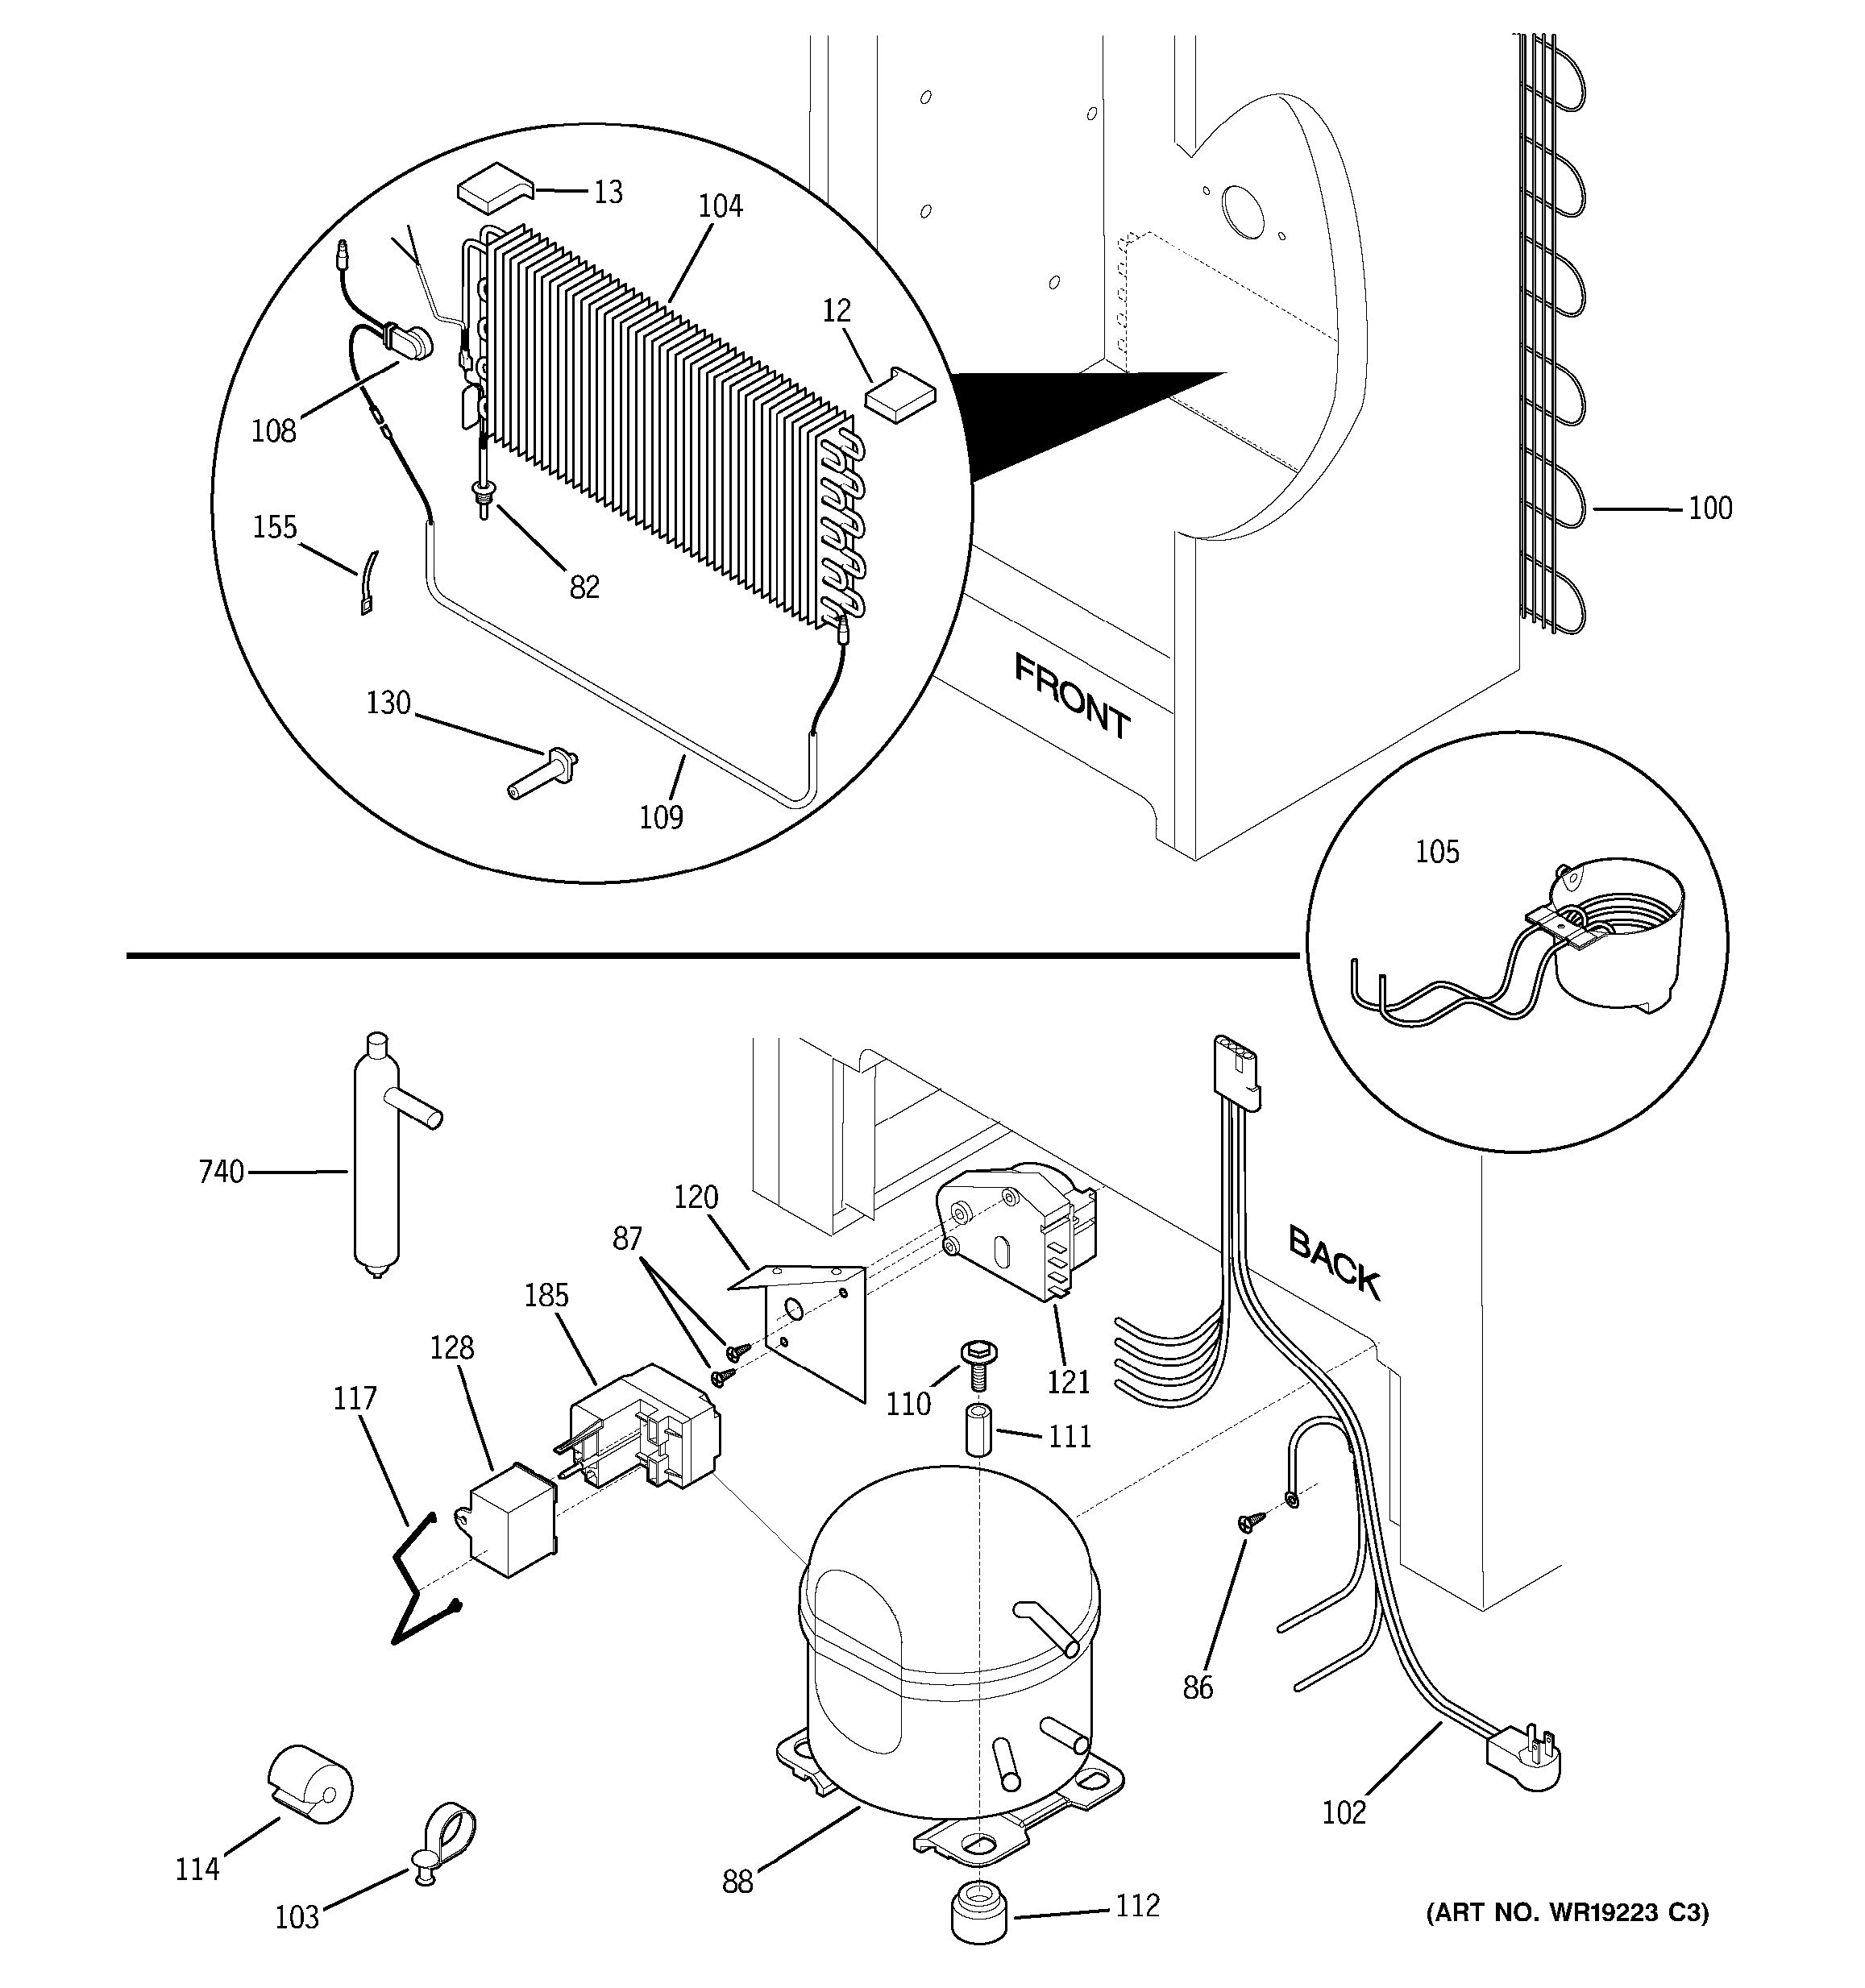 camco water heater thermostat wiring diagram images camco 08127 heat diagram for thermostat wiring schematic